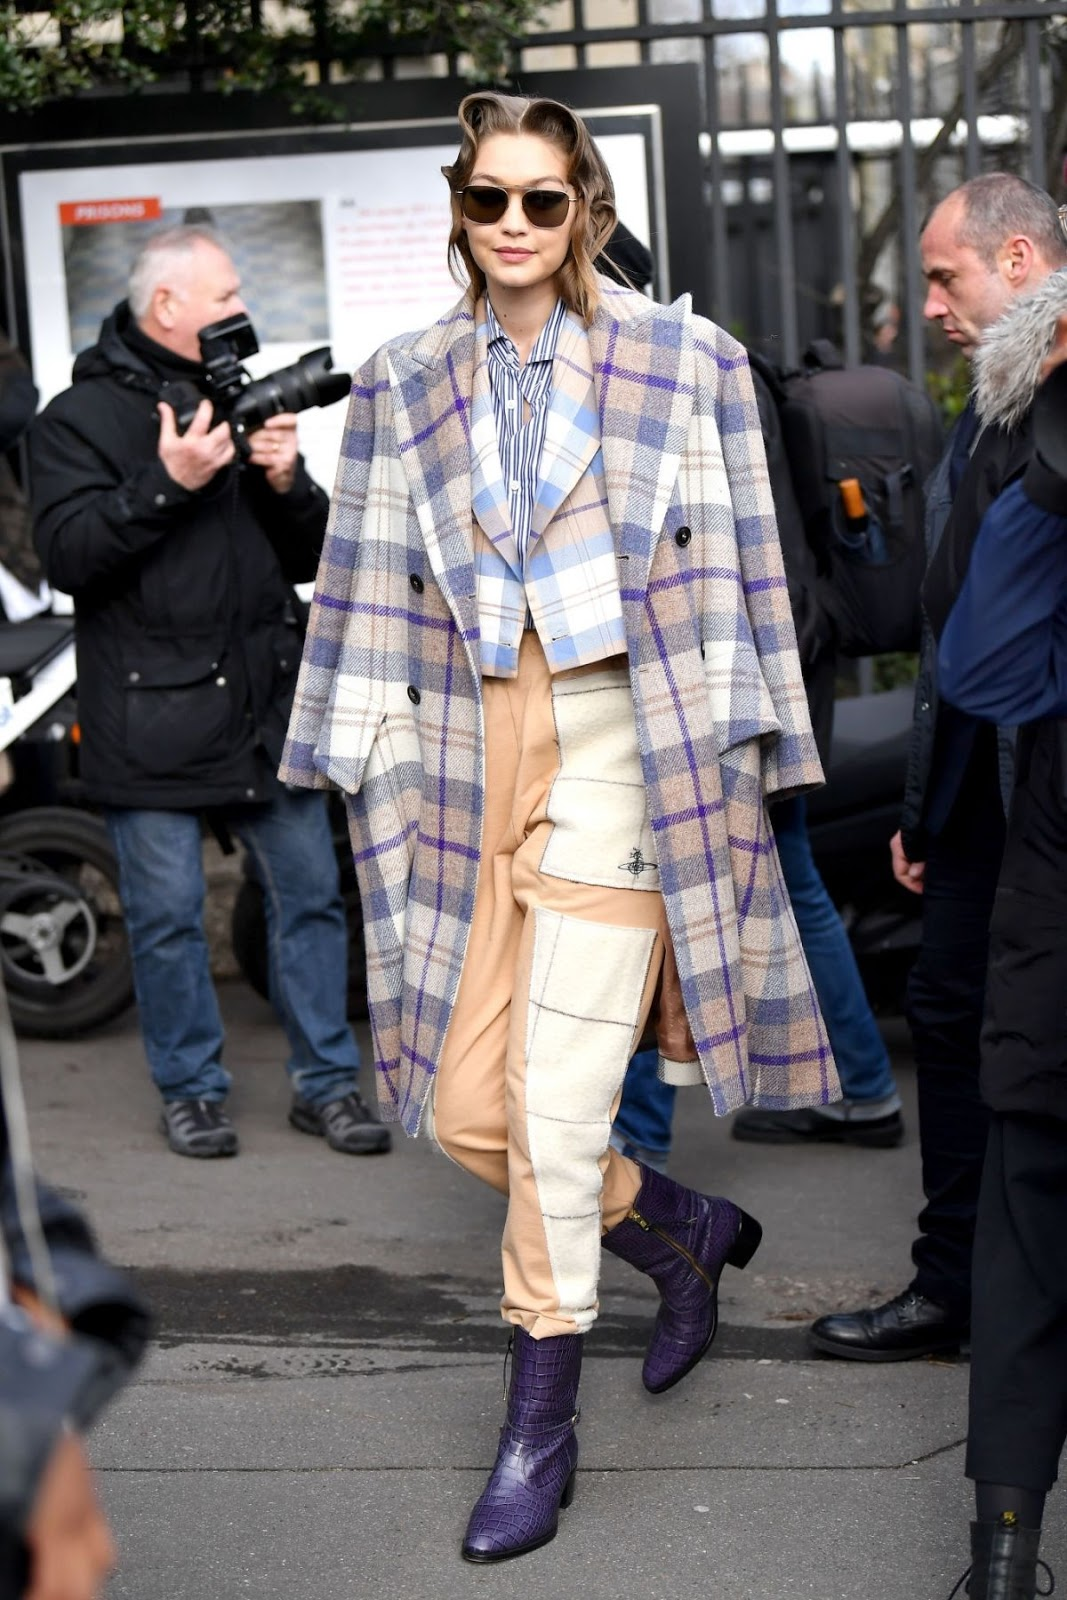 Gigi Hadid was every inch the style chameleon as she left Chanel's Autumn/ Winter 2020- 2021 showcase in a Vivienne Westwood ensemble